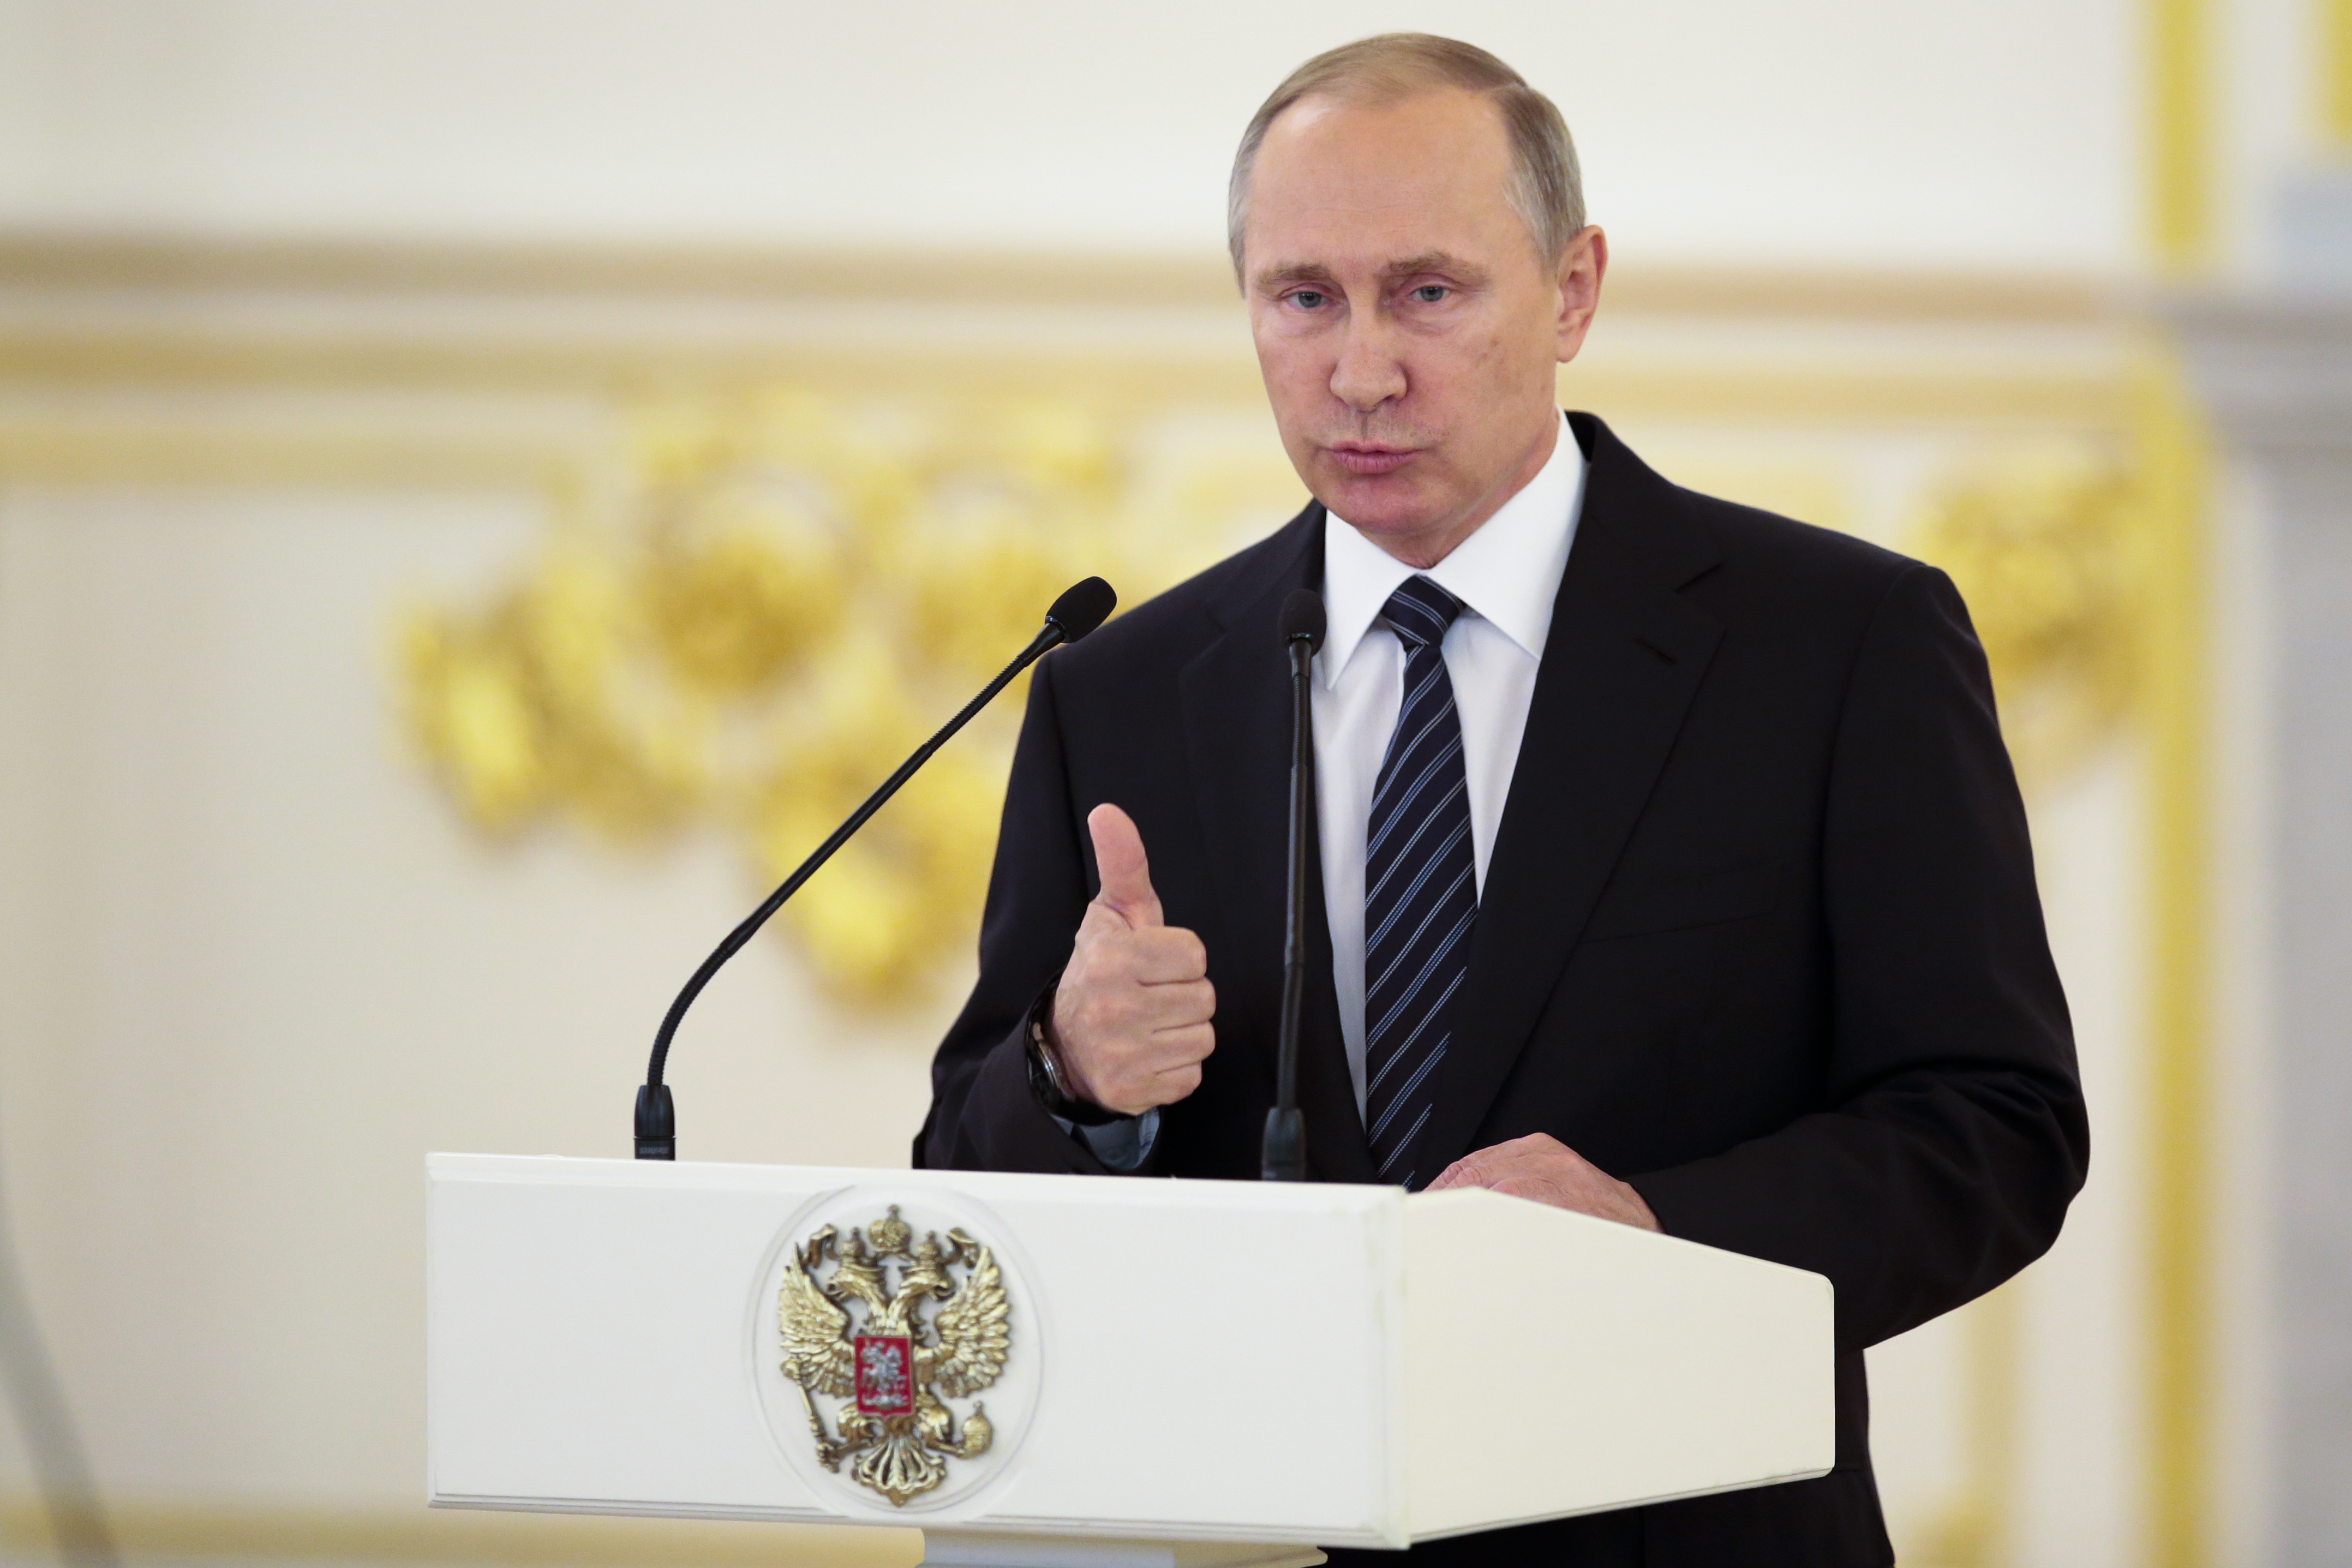 Russian President Vladimir Putin gives a speech during an awards ceremony for Russia's Olympians in Moscow's Kremlin in Moscow, Russia, Thursday, Aug. 25, 2016. (AP Photo/Ivan Sekretarev)